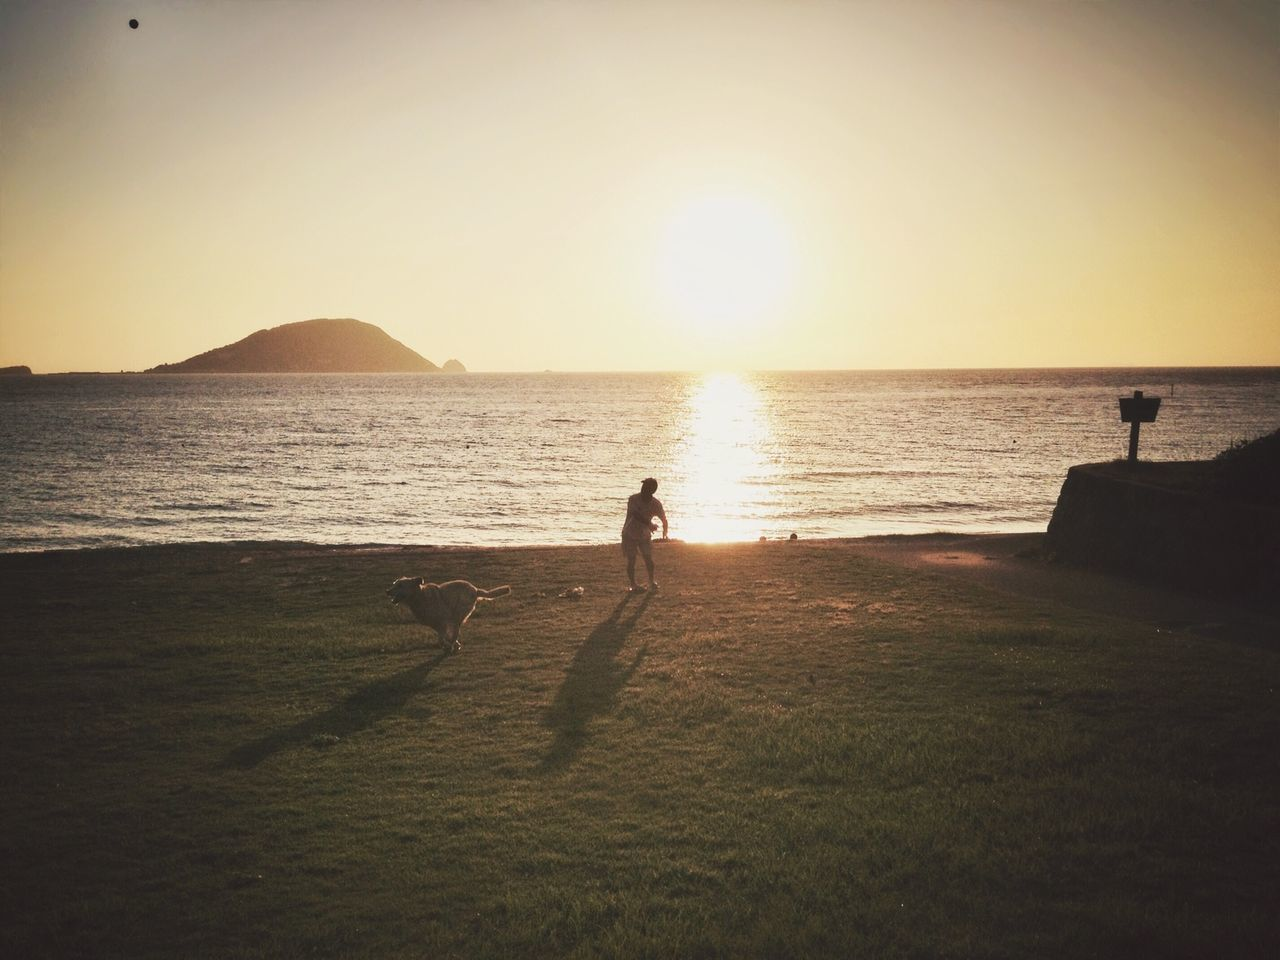 Man playing with dog on sea shore against sky during sunset